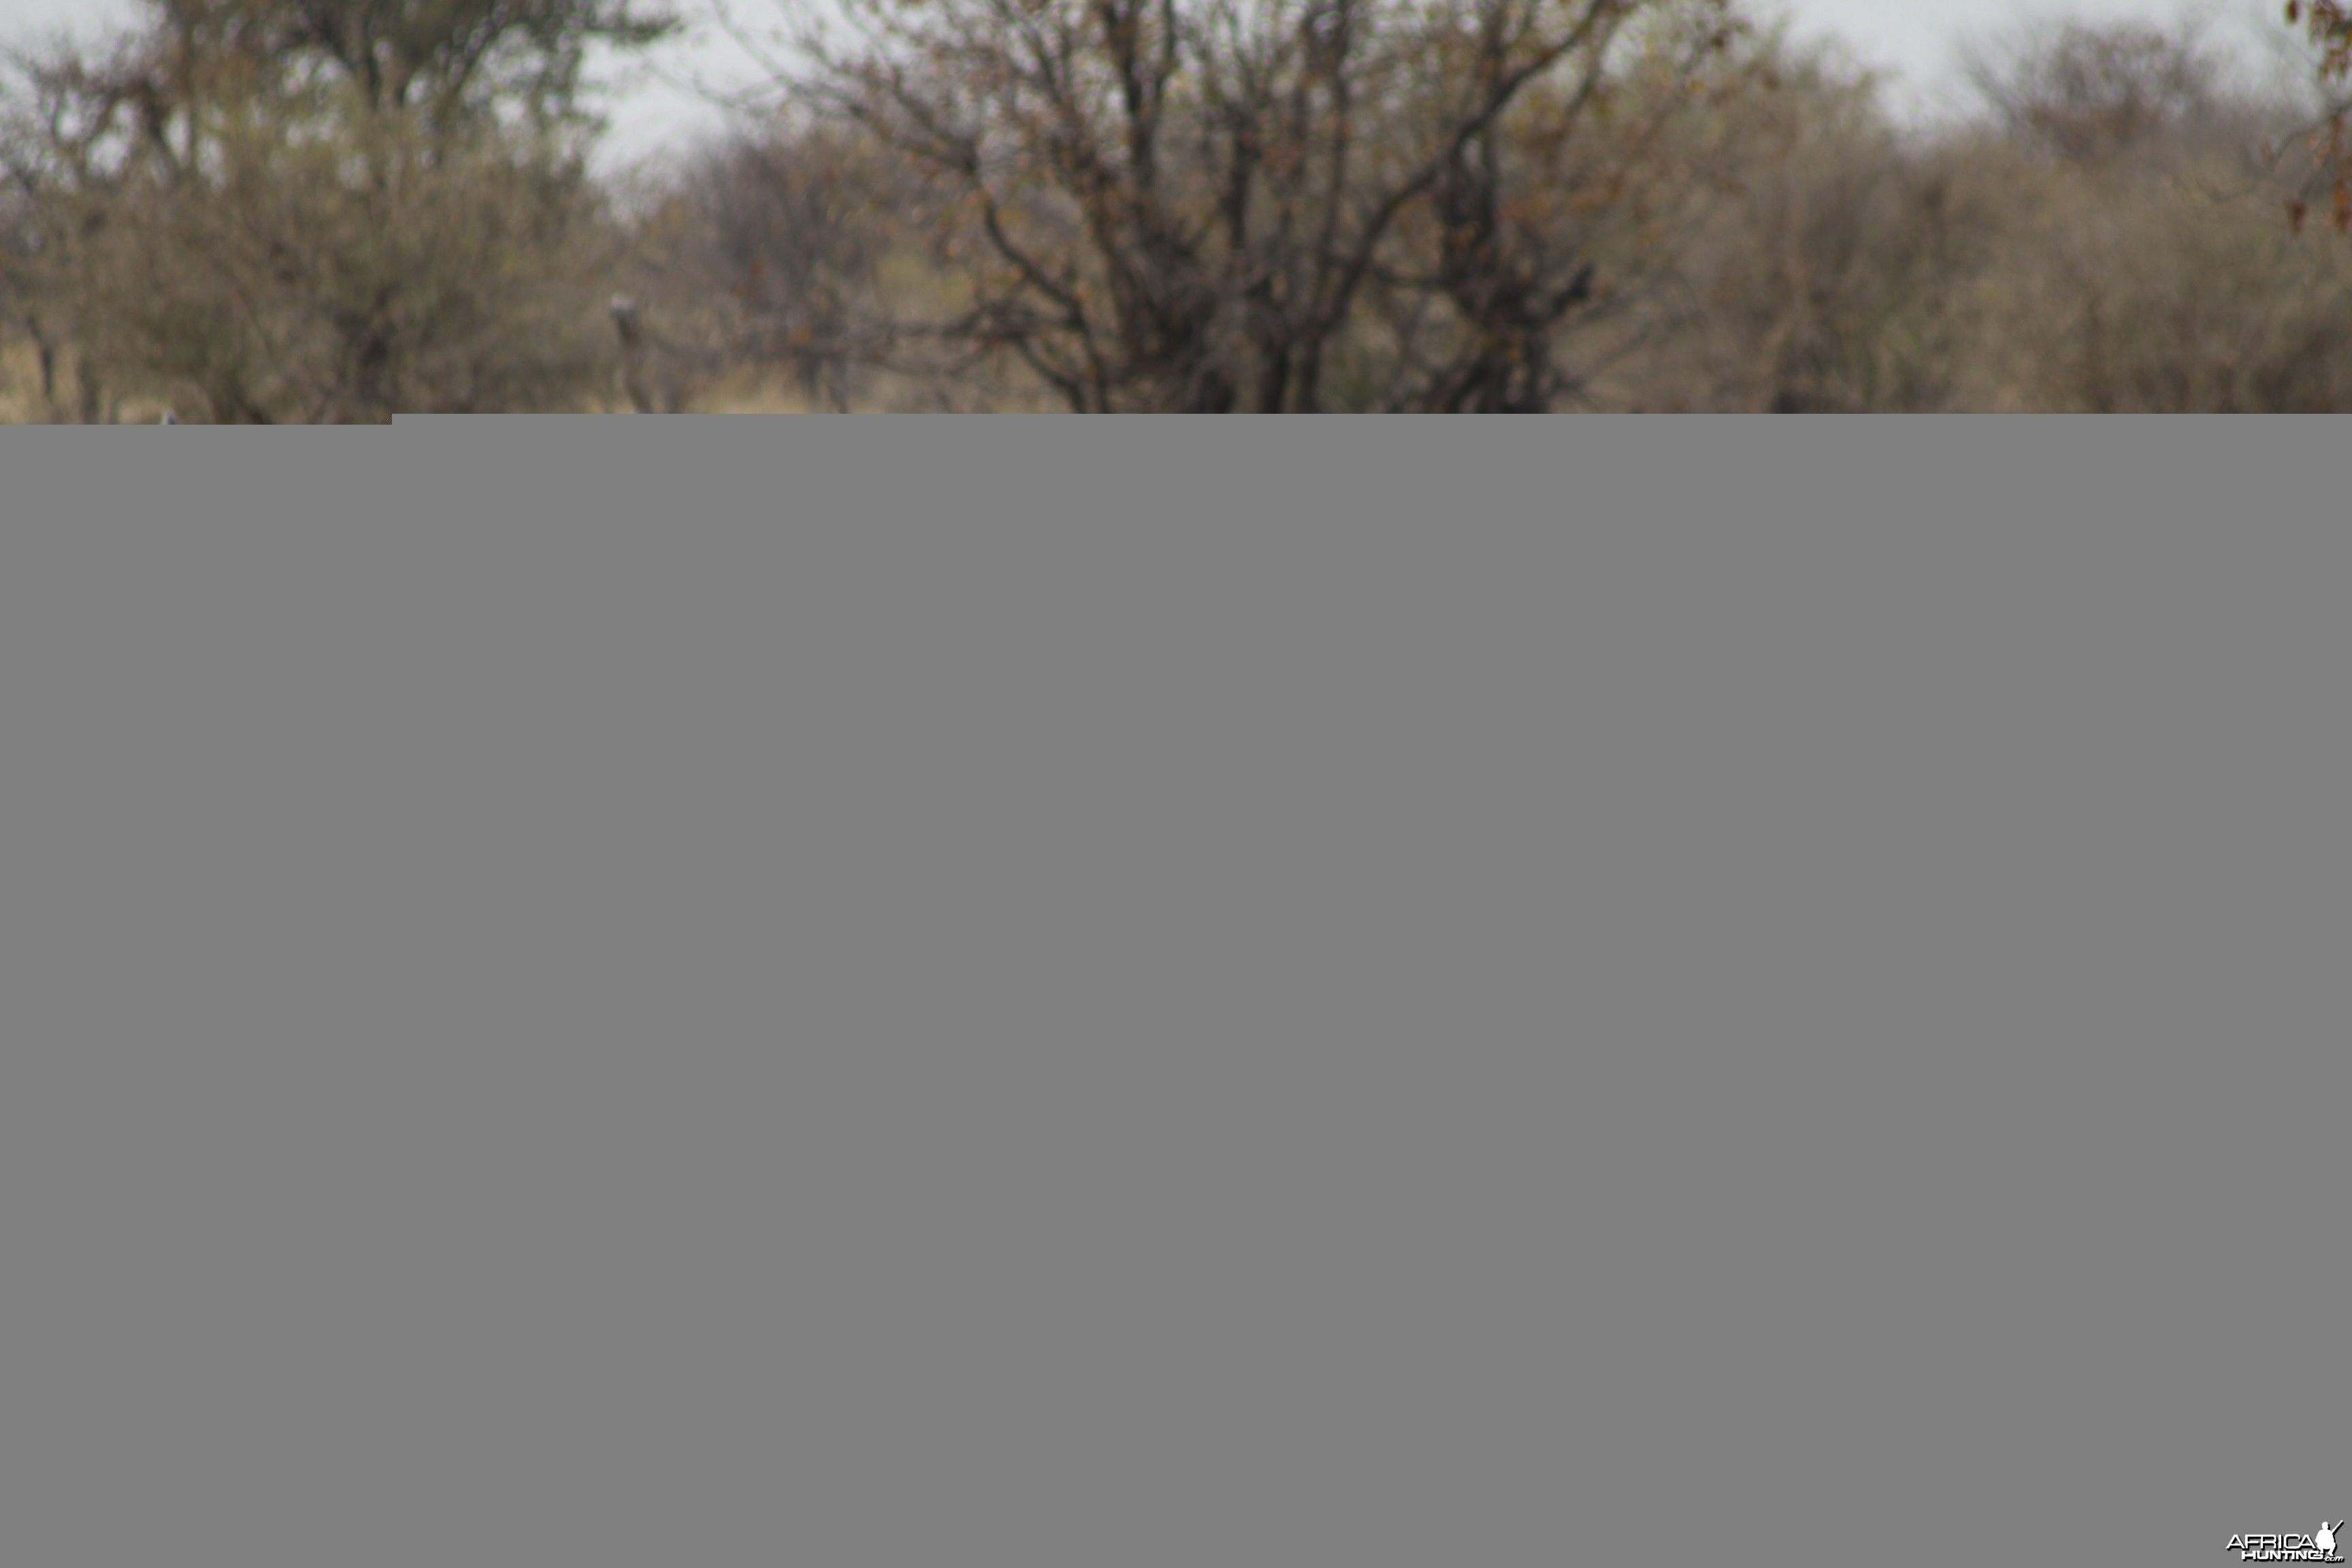 Red Hartebeest at Etosha National Park